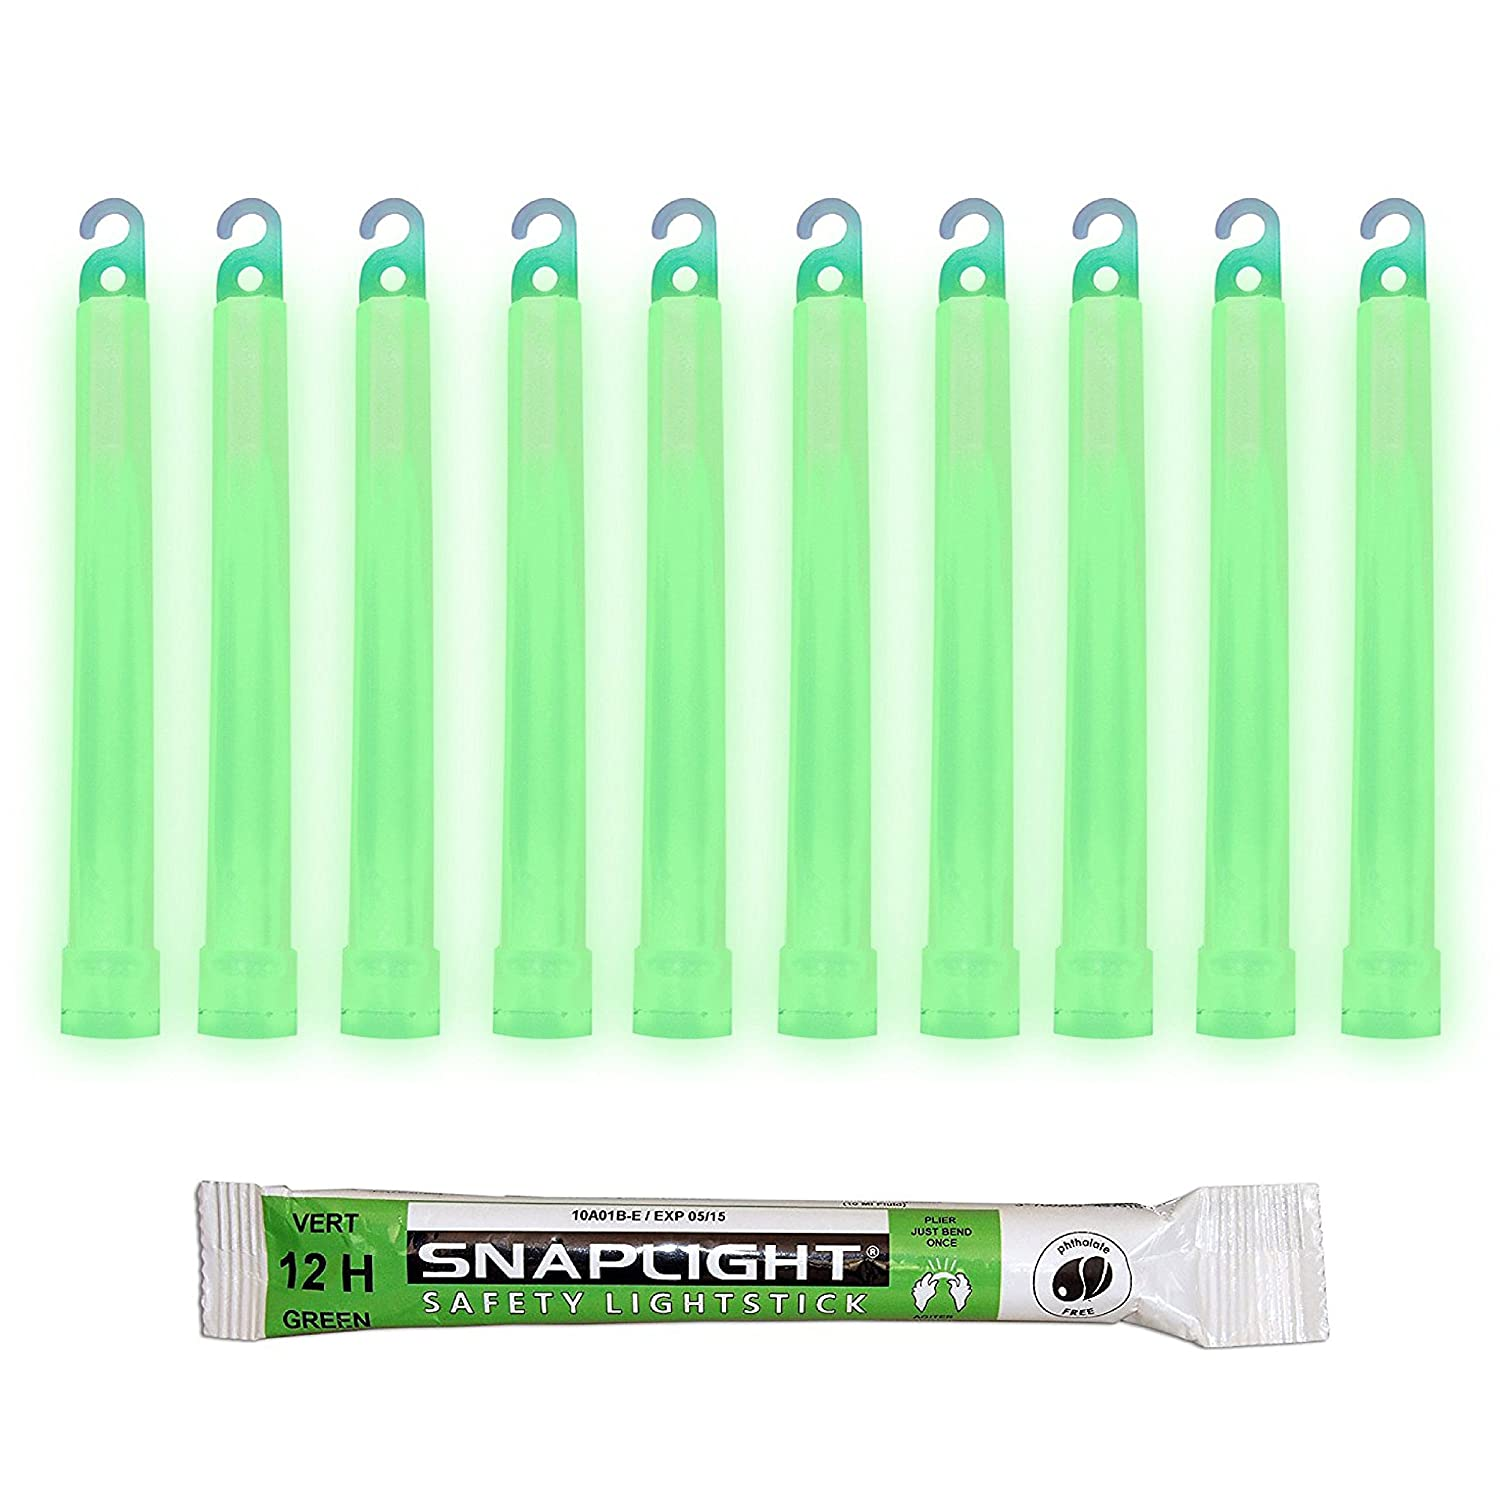 Cyalume SnapLight 6' Industrial Grade Glow Sticks, Multi-Color 30 Pack (10pcs White 8h, 10pcs Red 12h, 10pcs Green 12h) Light Sticks Cyalume Technologies SA8-308099AM